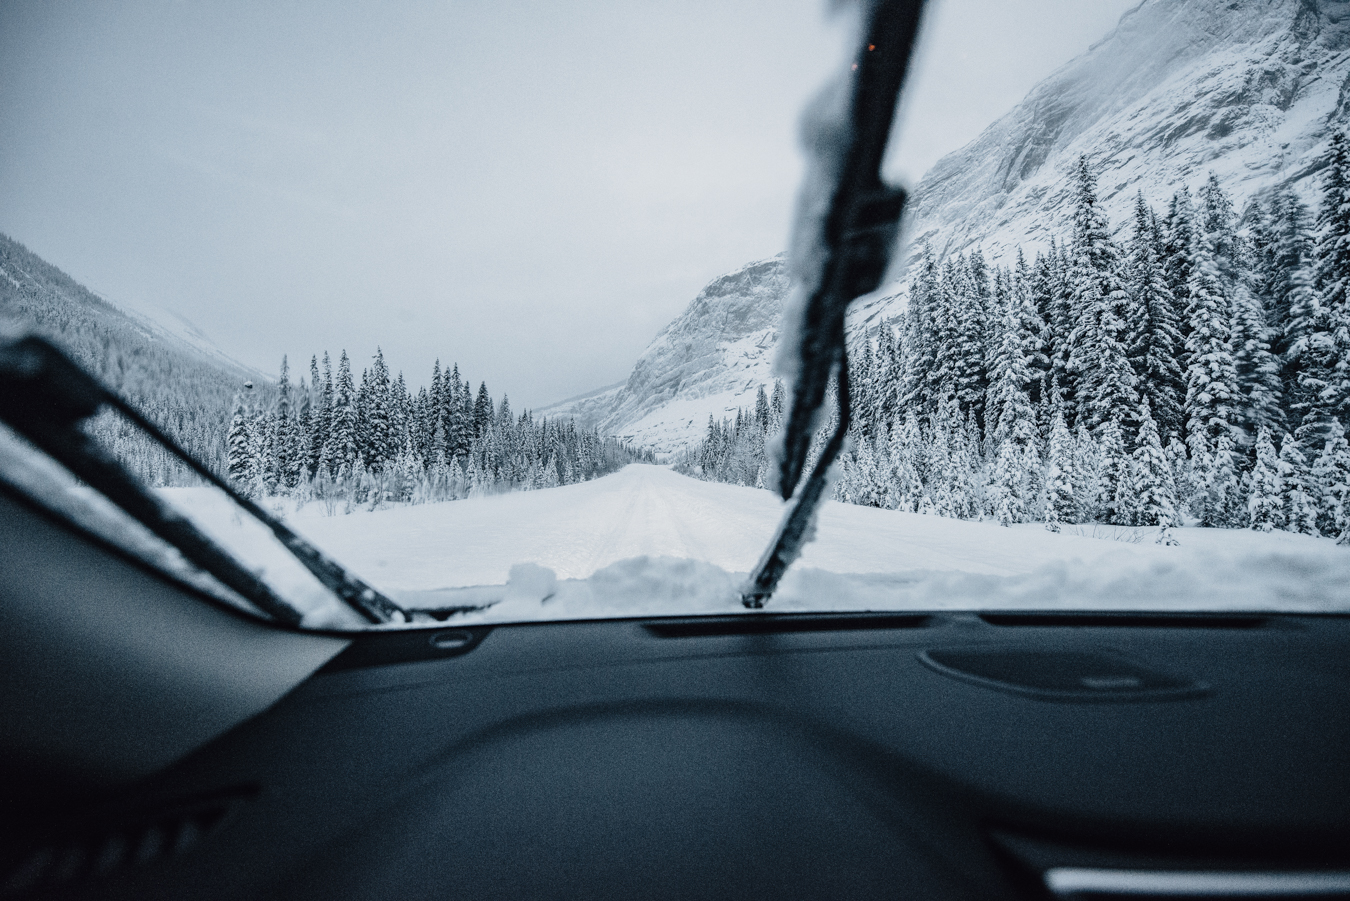 icefields-parkway-christian-frumolt-fotografie_web_small-22